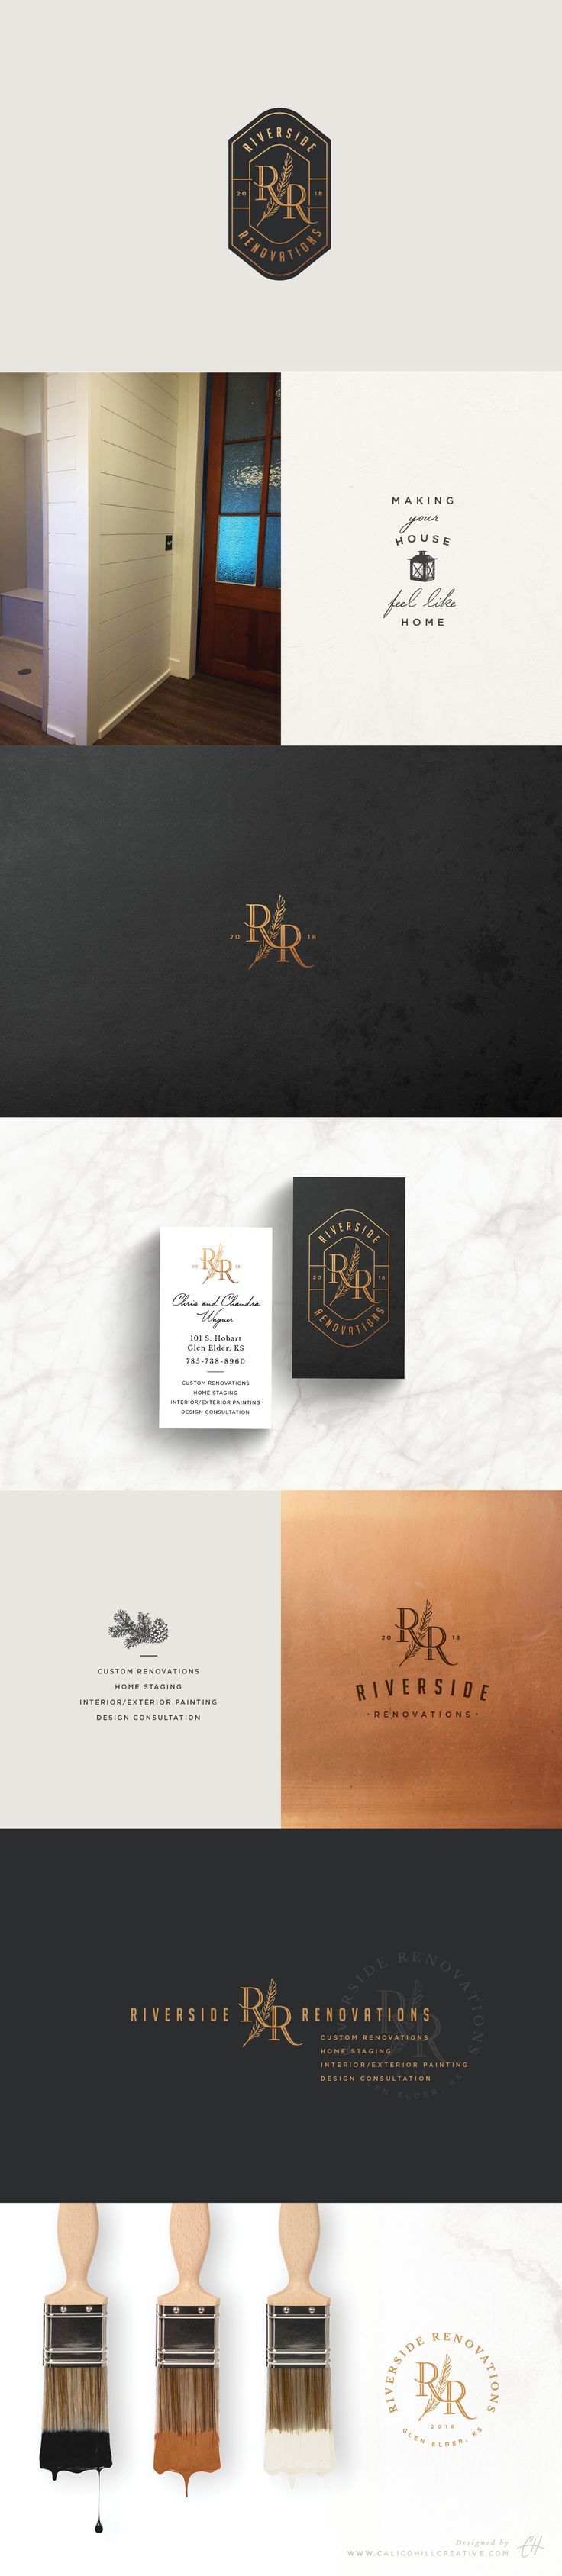 Logo and branding design for a renovation company by Calico Hill Creative.